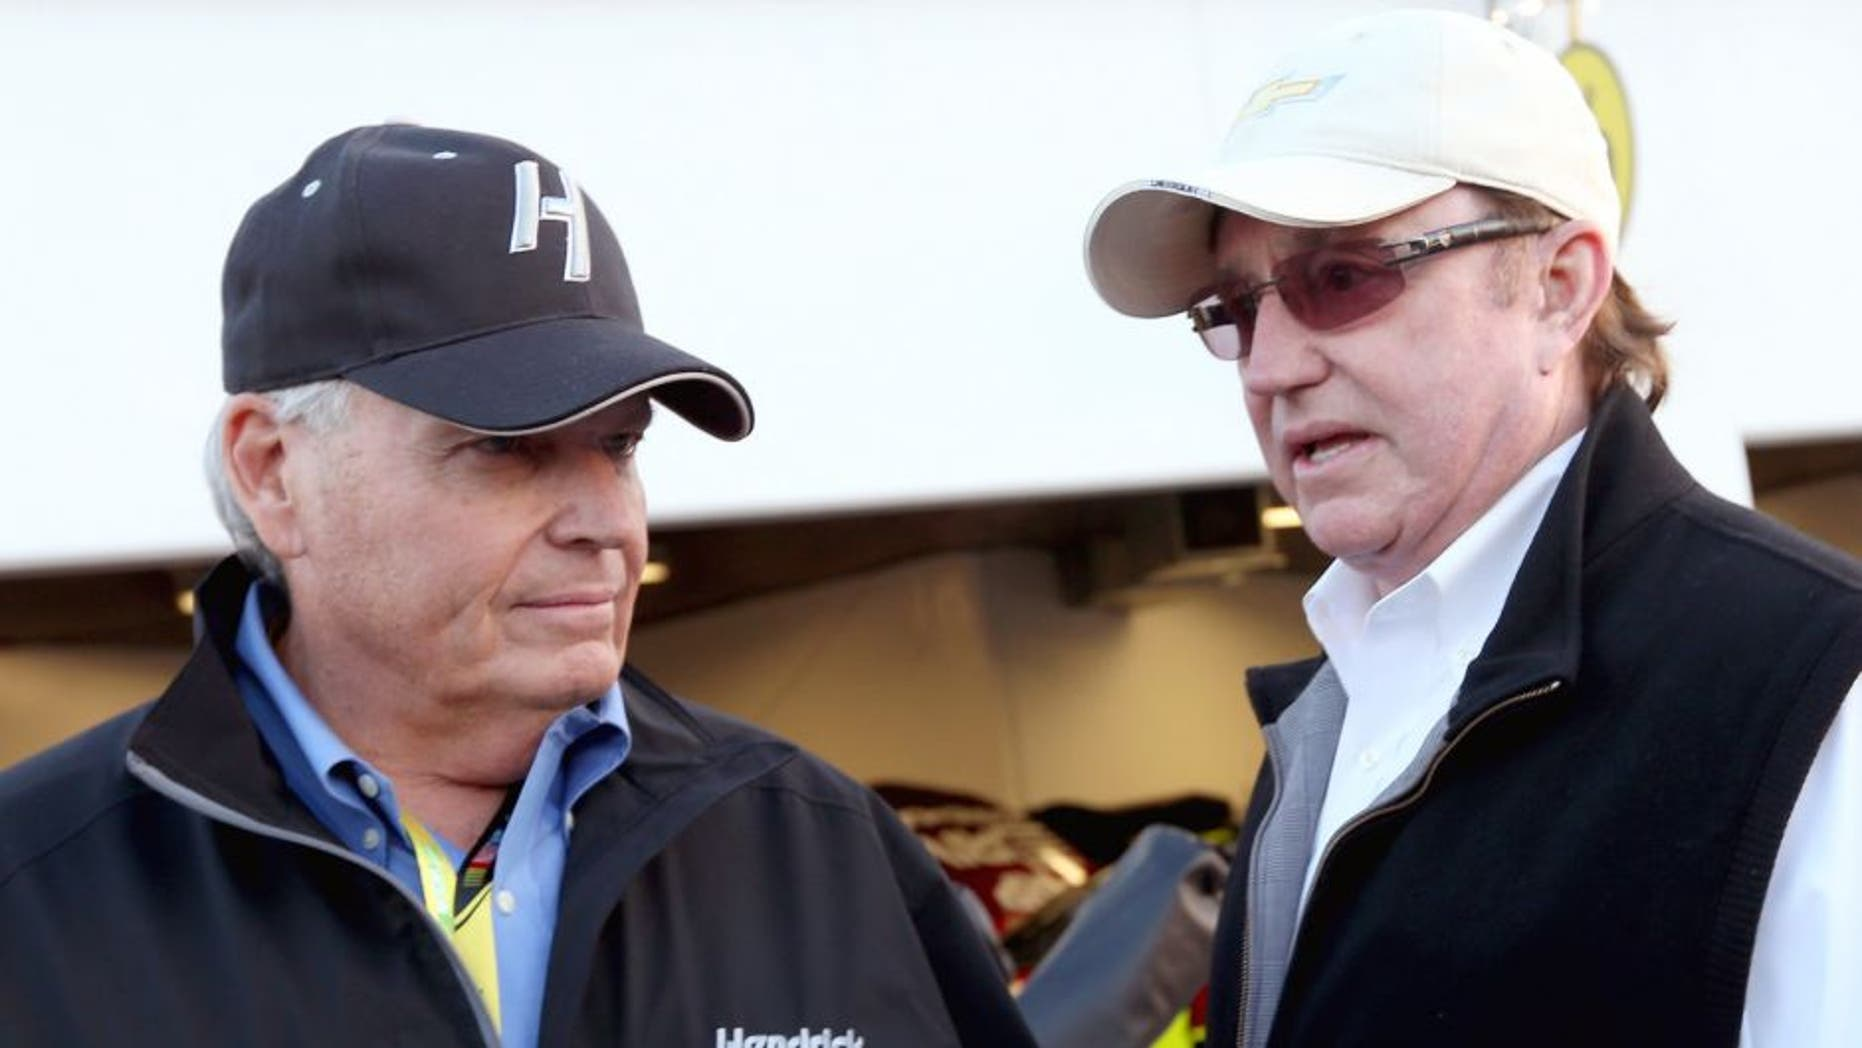 Team owners Rick Hendrick and Richard Childress during practice for the NASCAR Sprint Cup Series Sprint Unlimited at Daytona International Speedway on February 15, 2013 in Daytona Beach, Florida. (Photo by Tom Pennington/NASCAR via Getty Images)